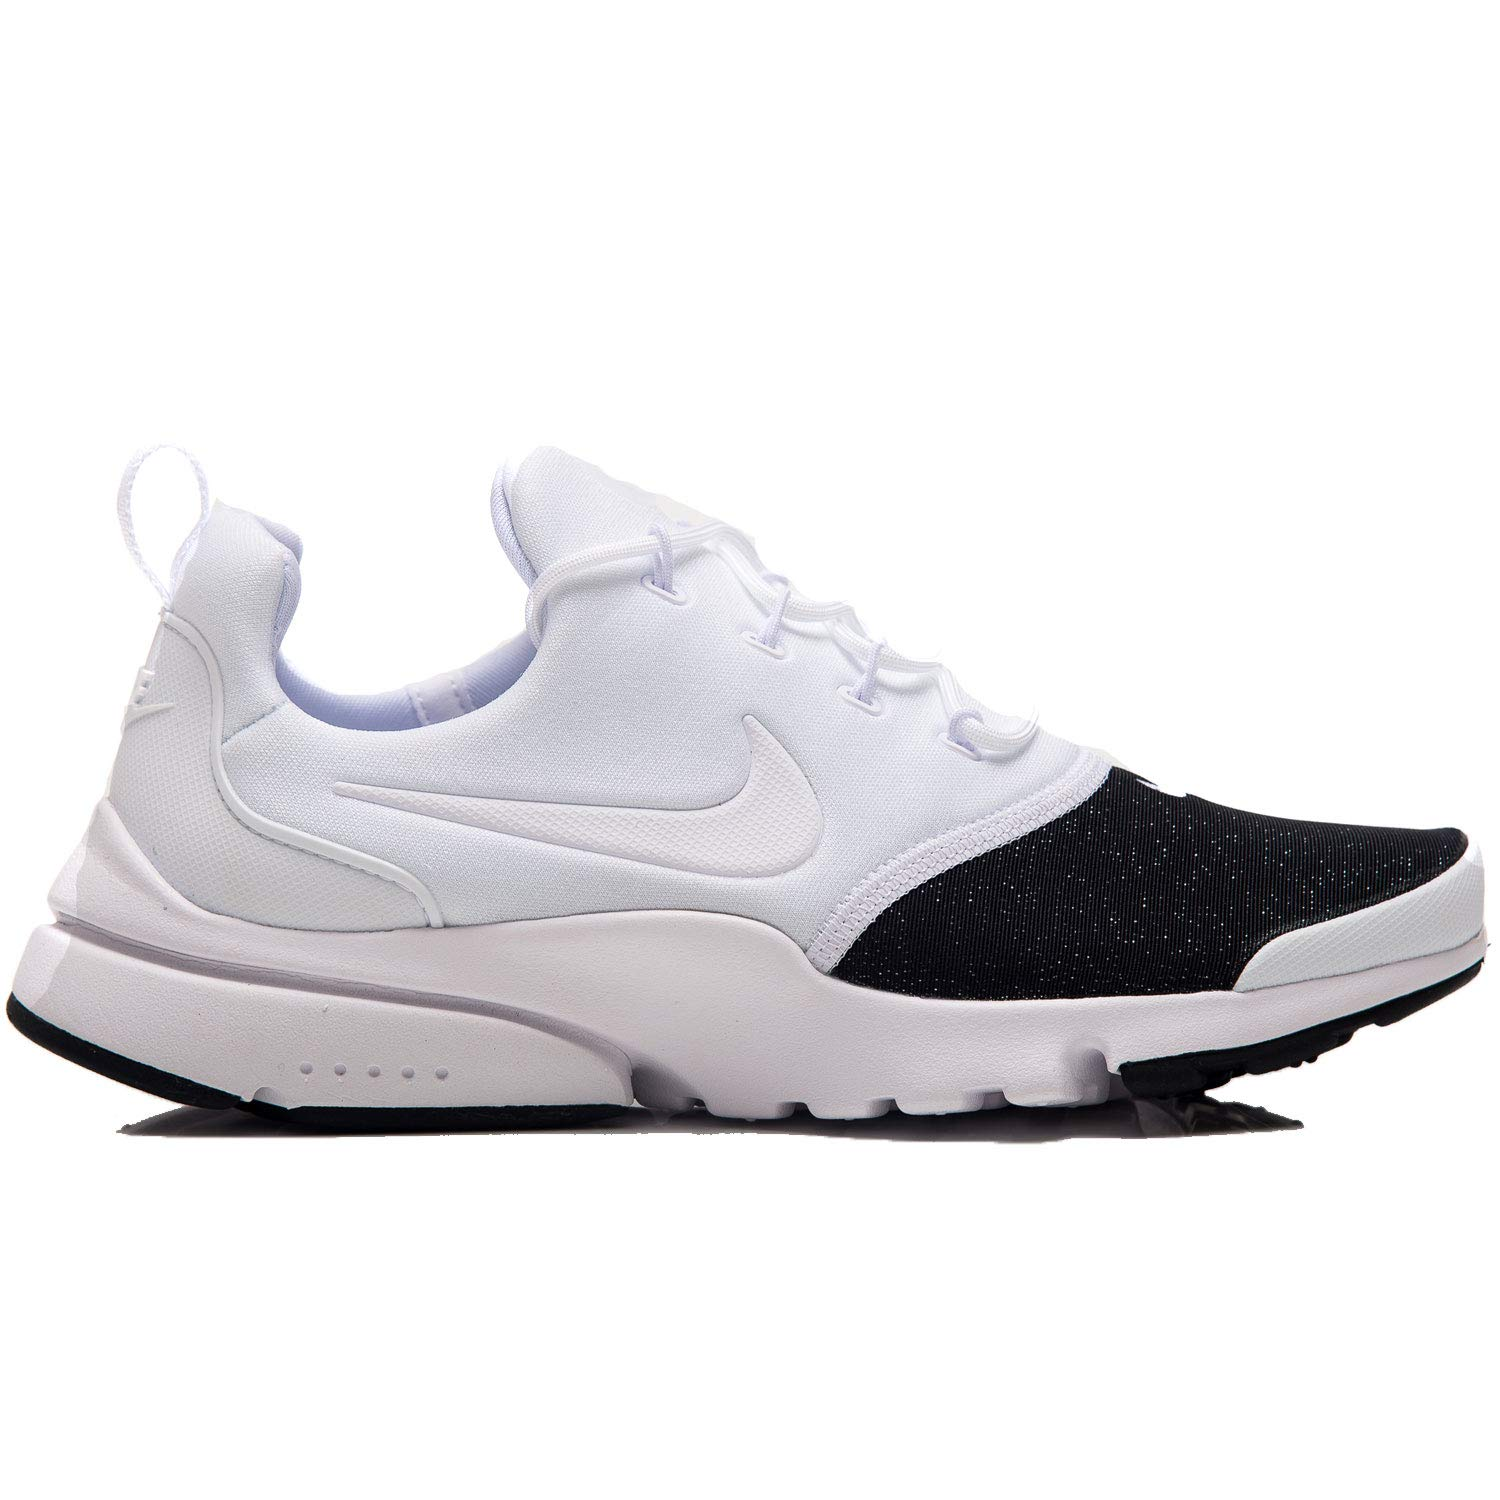 quality design 7871d 34382 Nike Women s WMNS Presto Fly PRM Competition Running Shoes  Amazon.co.uk   Shoes   Bags